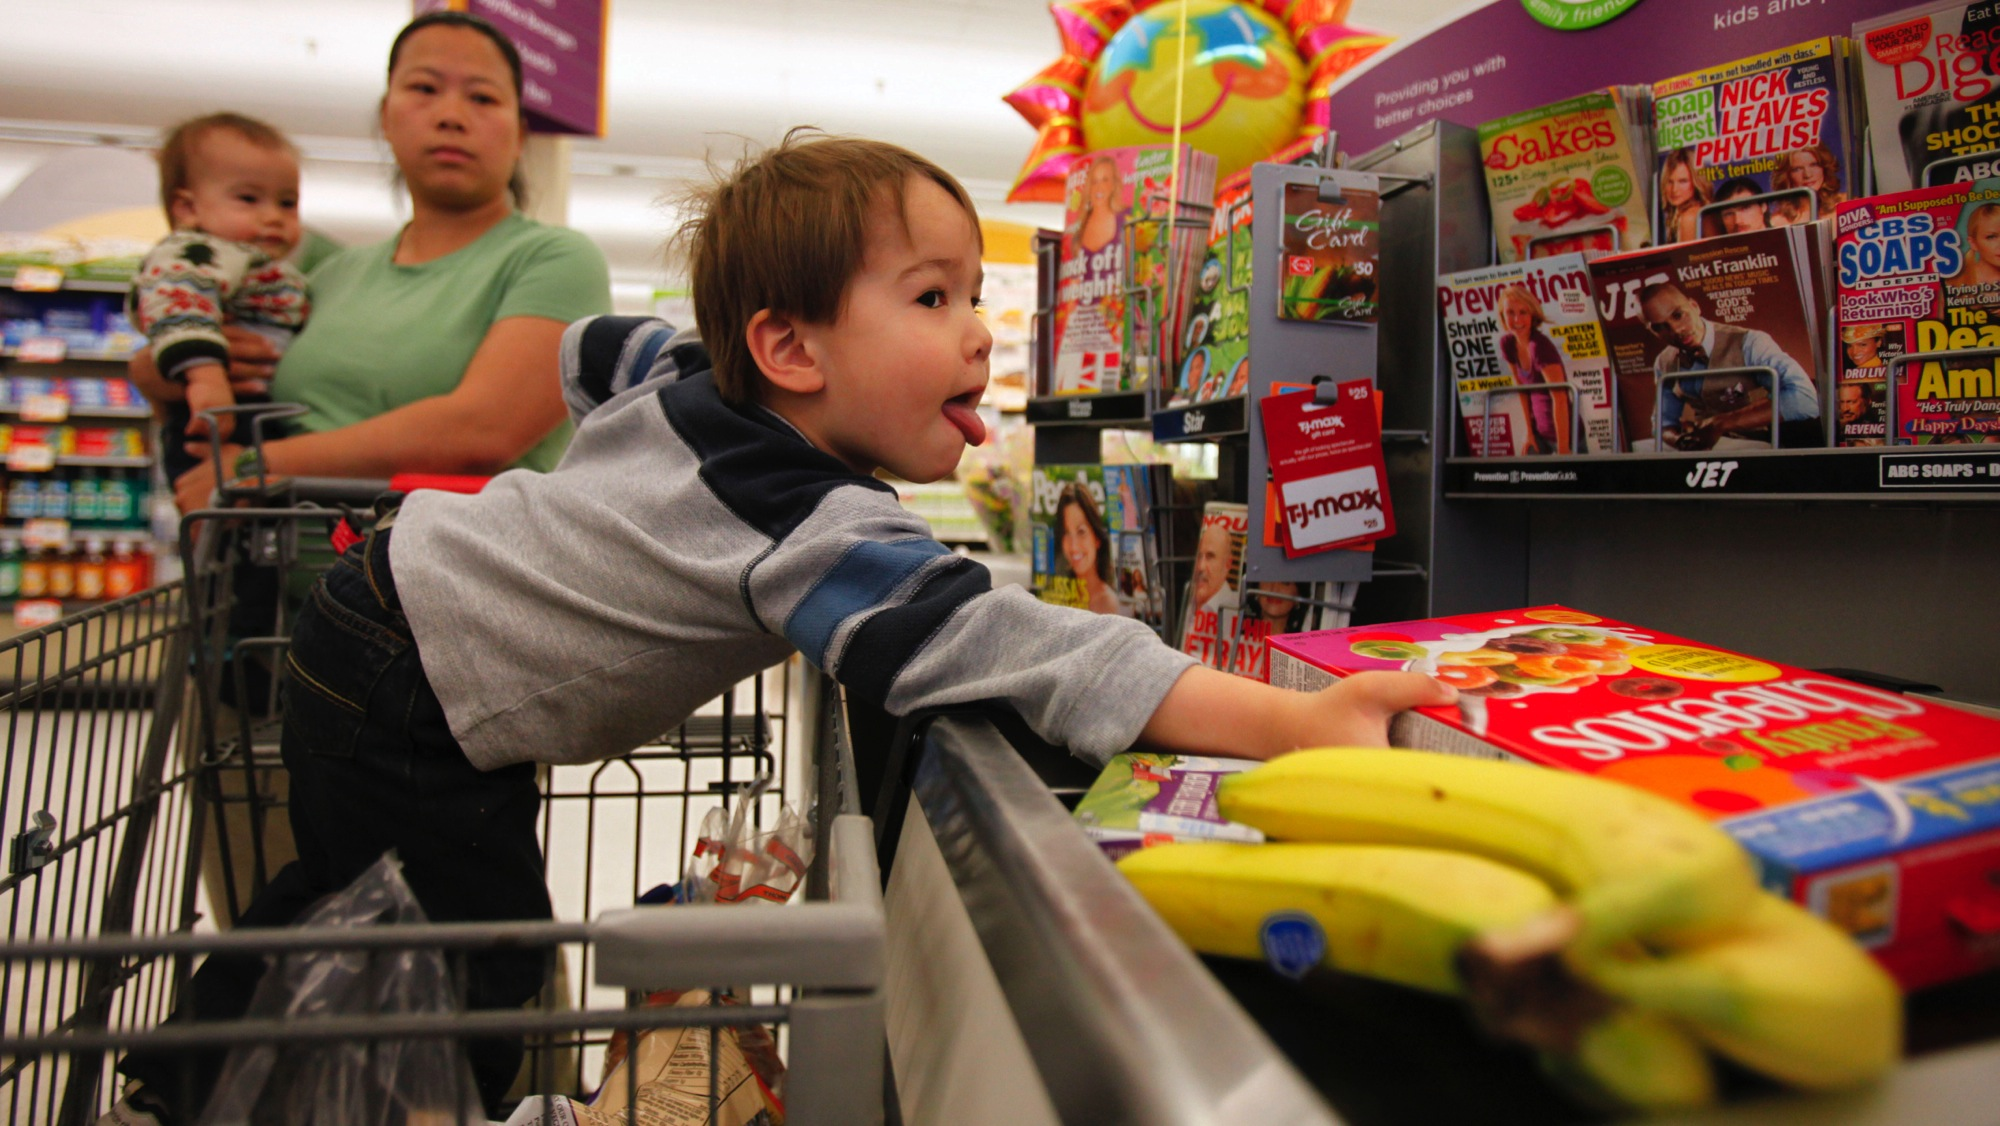 In this April 6, 2009 photo, A.J. Wynne, 3, of Chevy Chase, Md., loads groceries onto the belt as his mother Becky Wynne holds Henry Wynne, 11 months, at a Giant grocery store in Silver Spring, Md. As the recession drags on, moms and dads are figuring out ways to dote without opening their wallets. They're nixing fancy birthday parties, music lessons, sports leagues and gifts for their children. (AP Photo/Jacquelyn Martin)